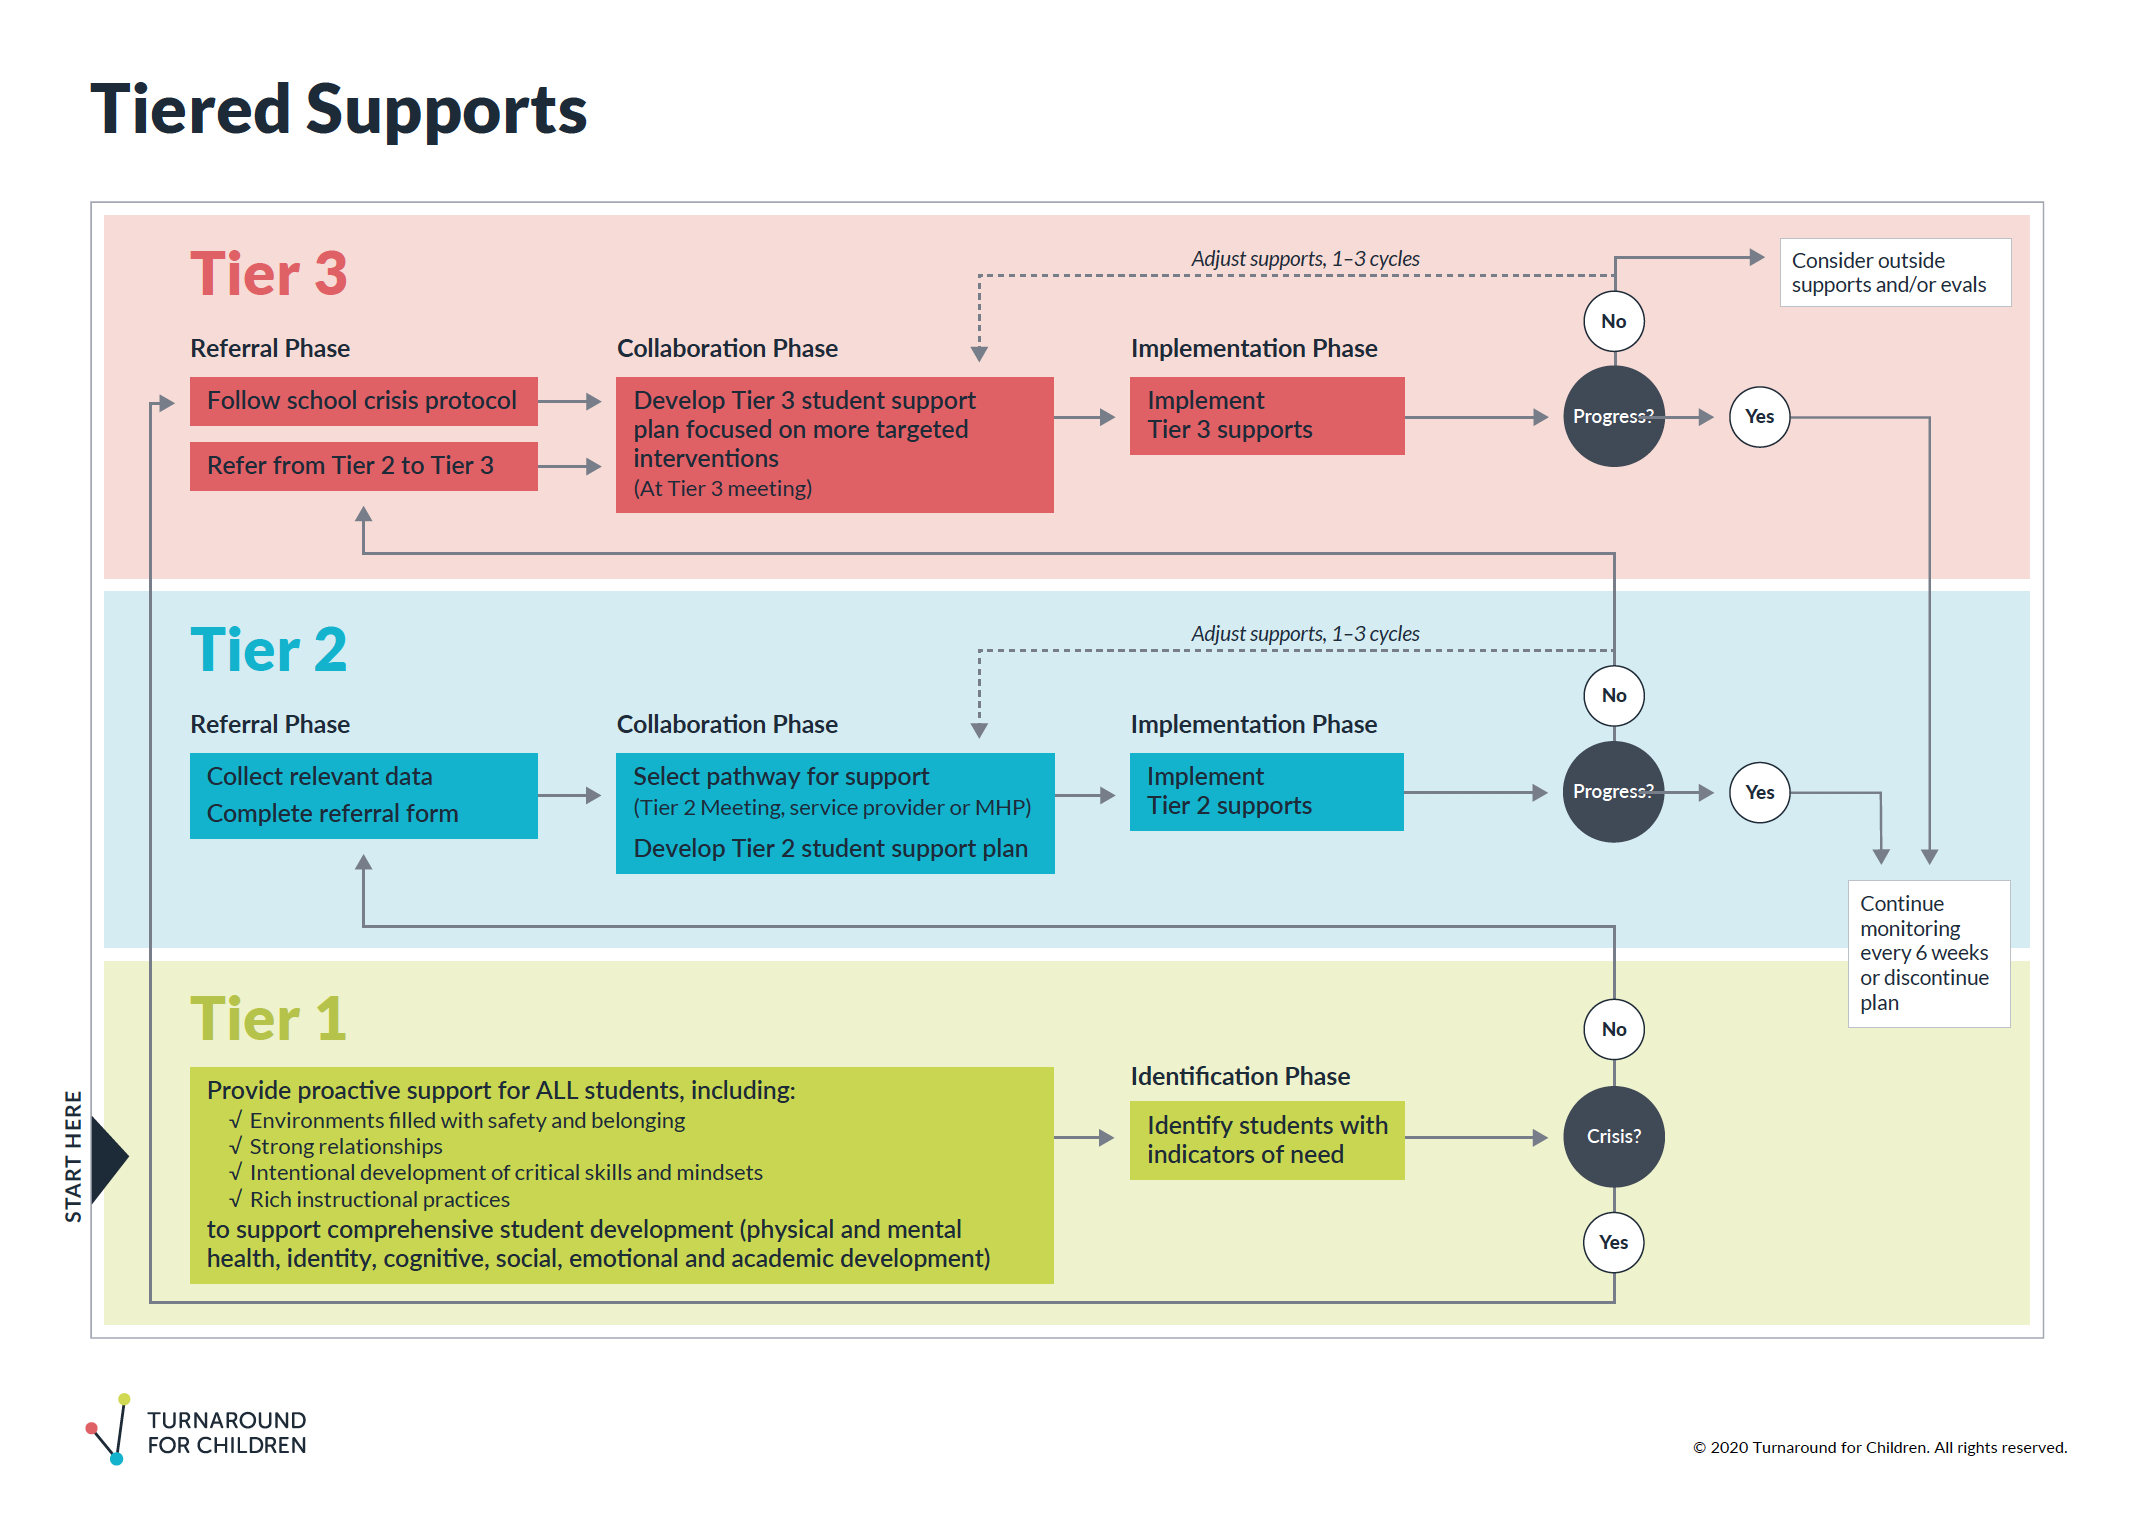 Graphic Tiered Supports System